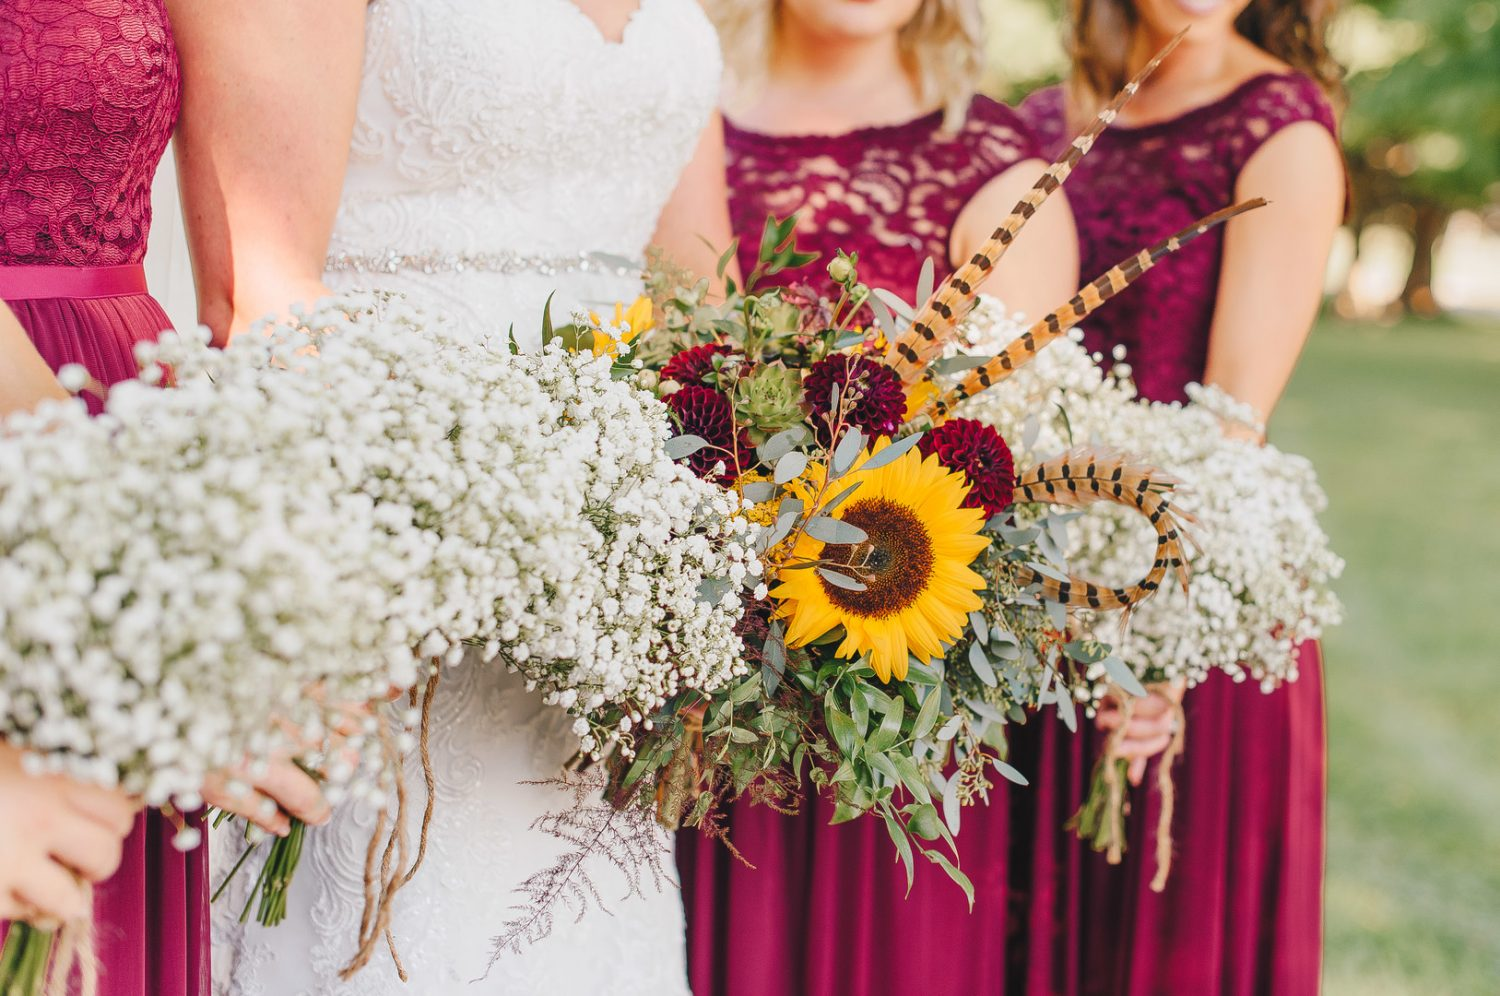 burgundy bridesmaid dresses with sunflower and baby's breath arrangements